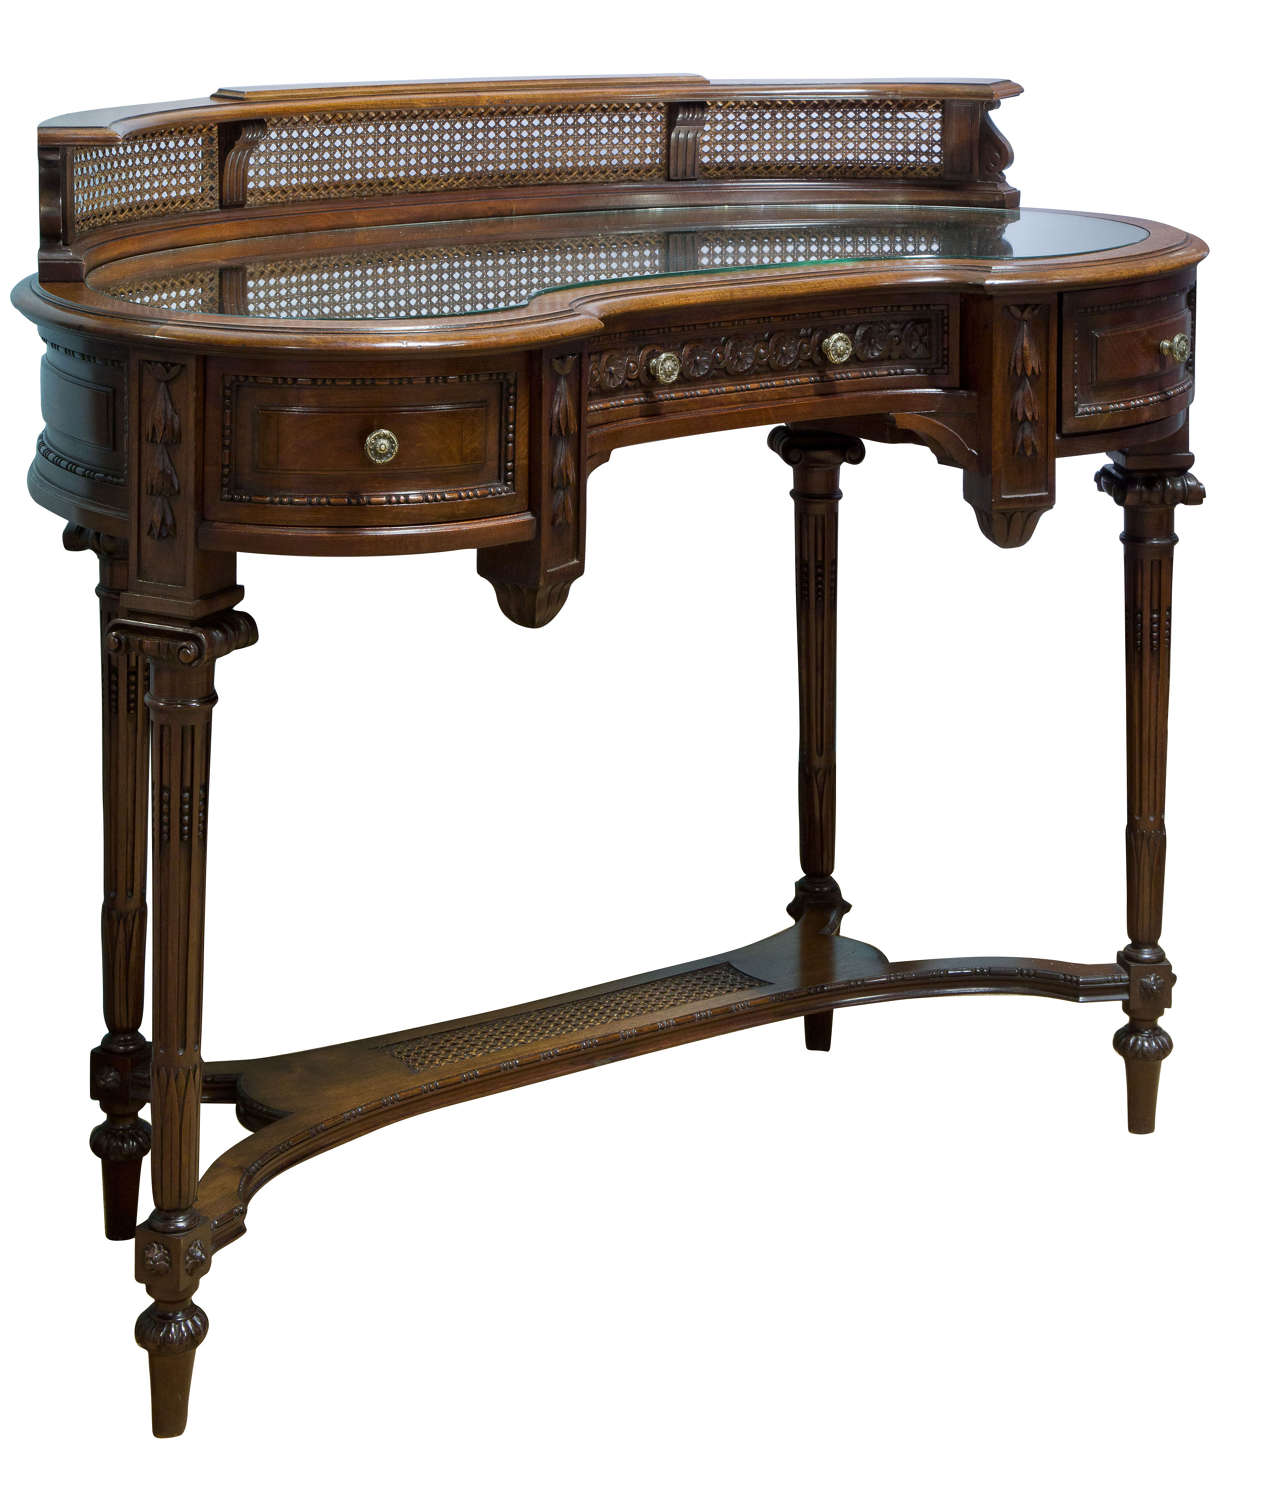 Fine Quality French Kidney Shape Dressing Table